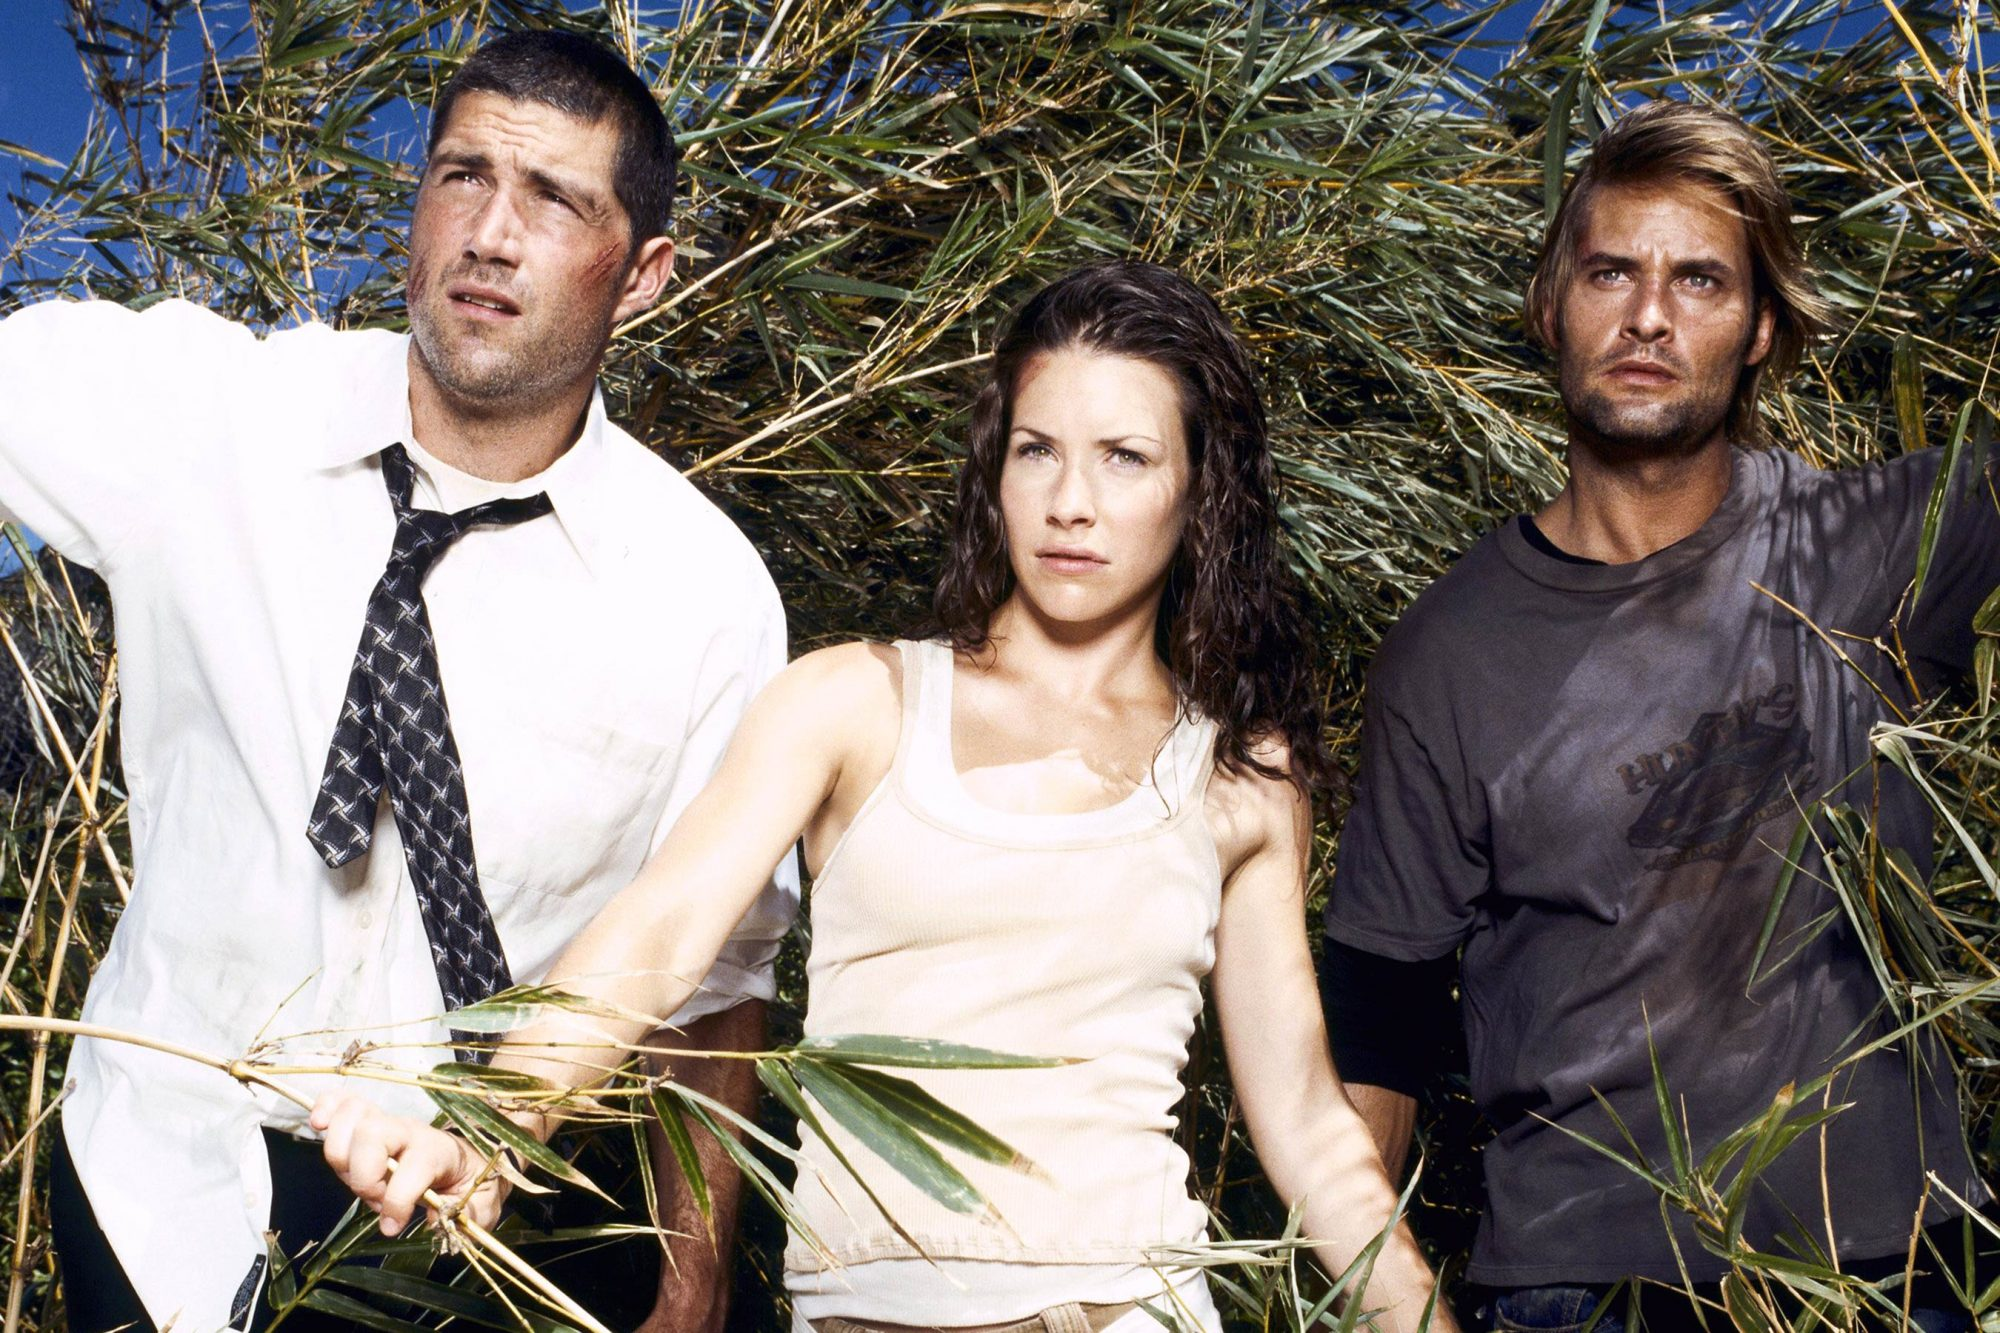 MATTHEW FOX, EVANGELINE LILLY, JOSH HOLLOWAY